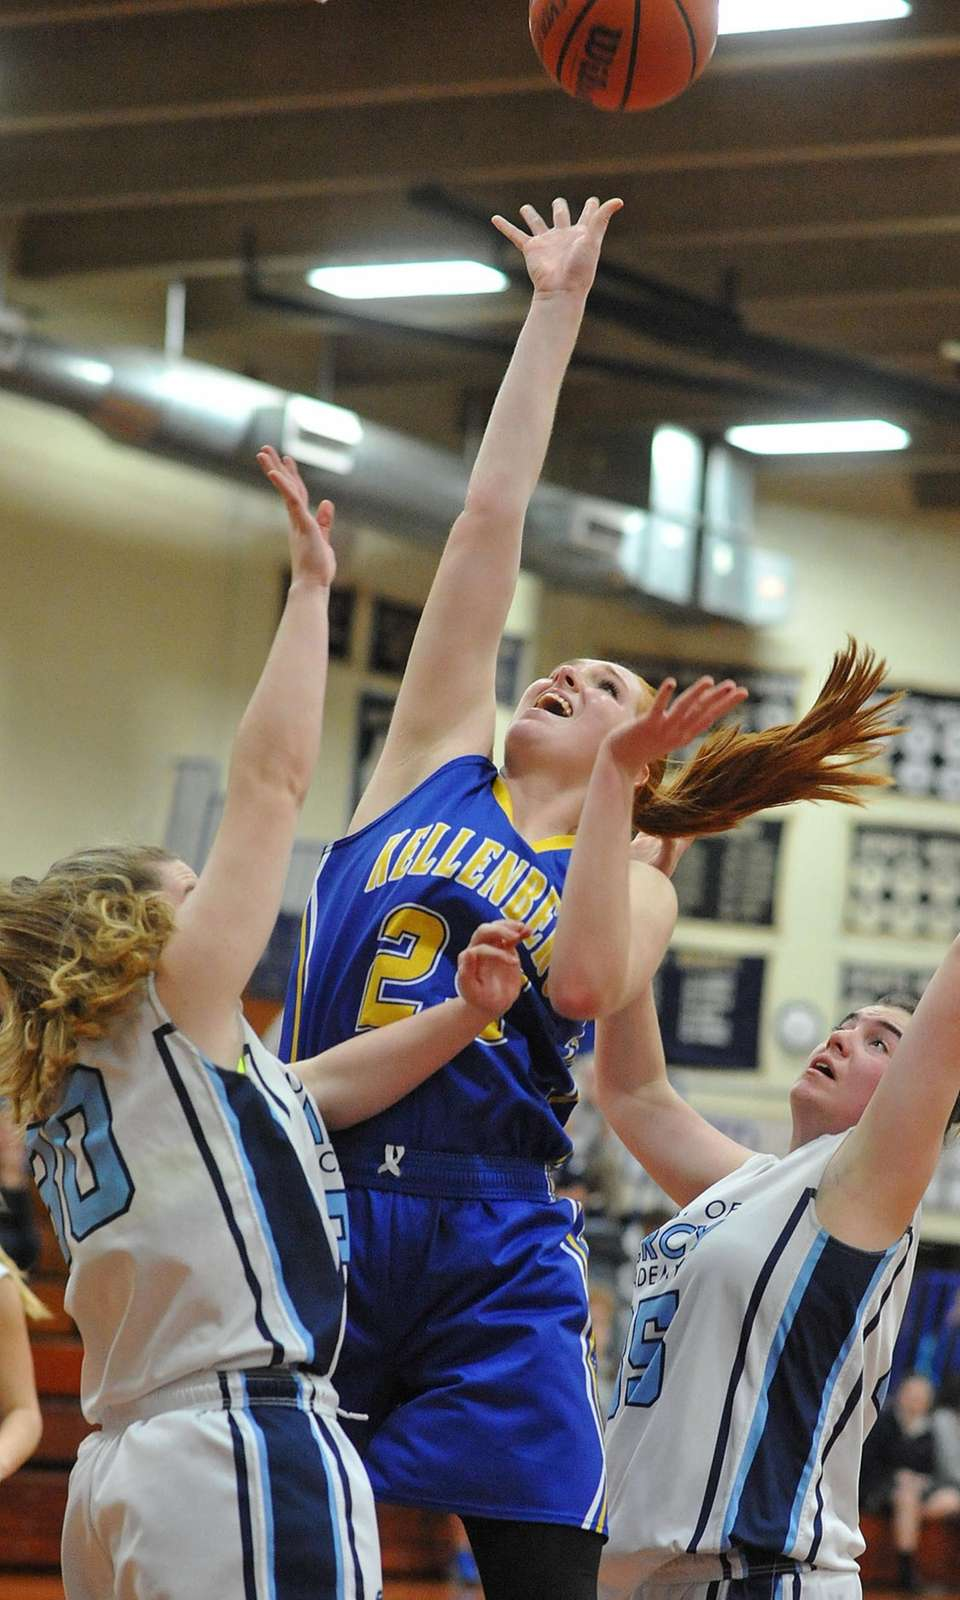 Morgan Staab #25 of Kellenberg drives to the